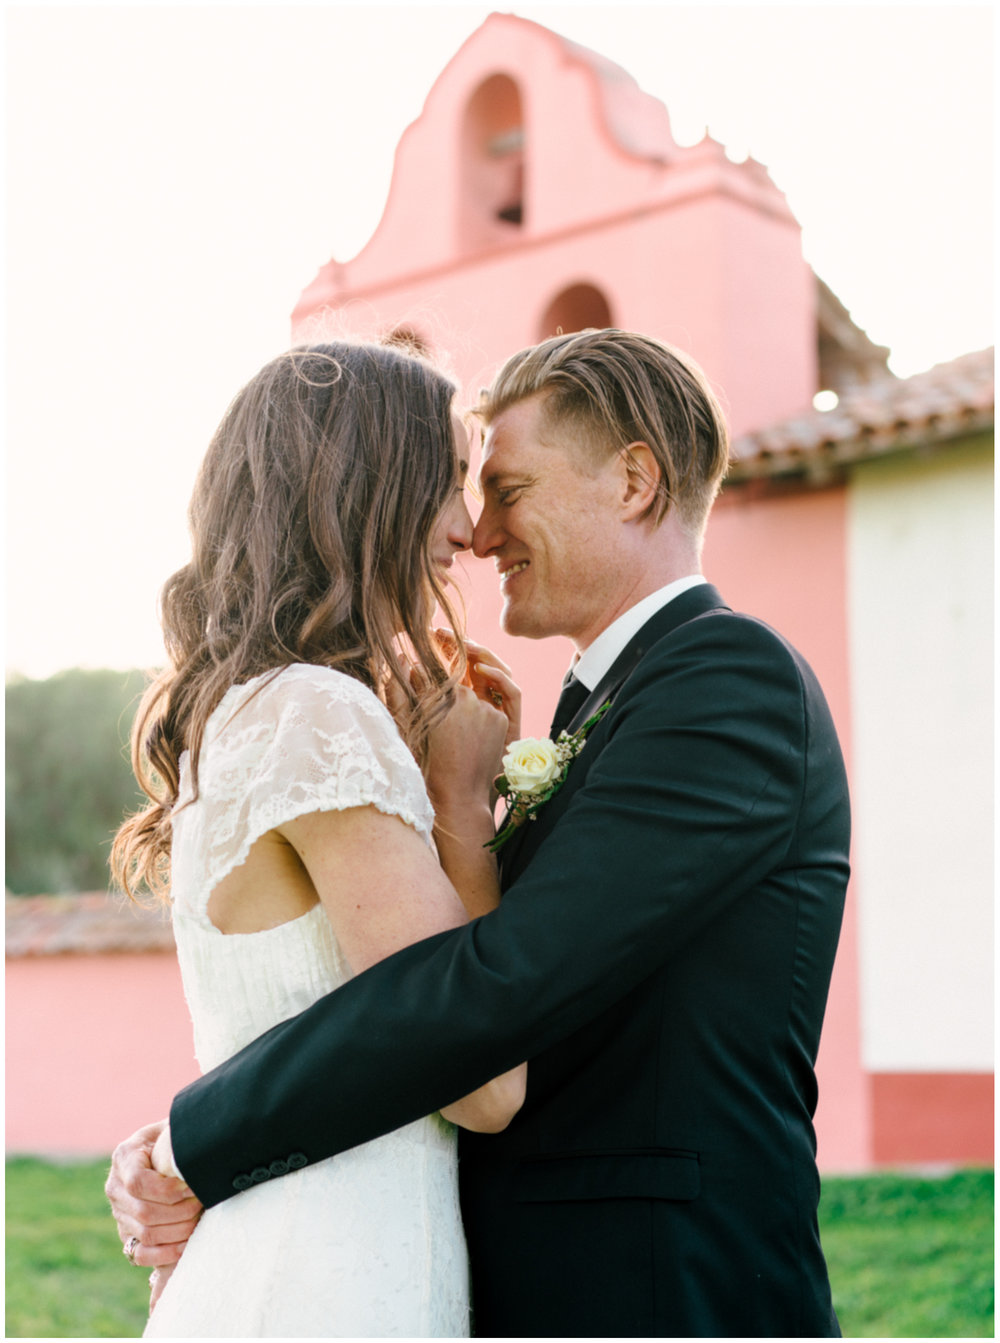 Santa_Barbara_Wedding_Photographer_Pinnel_Photography_La_Purisima_Mission-054.jpg